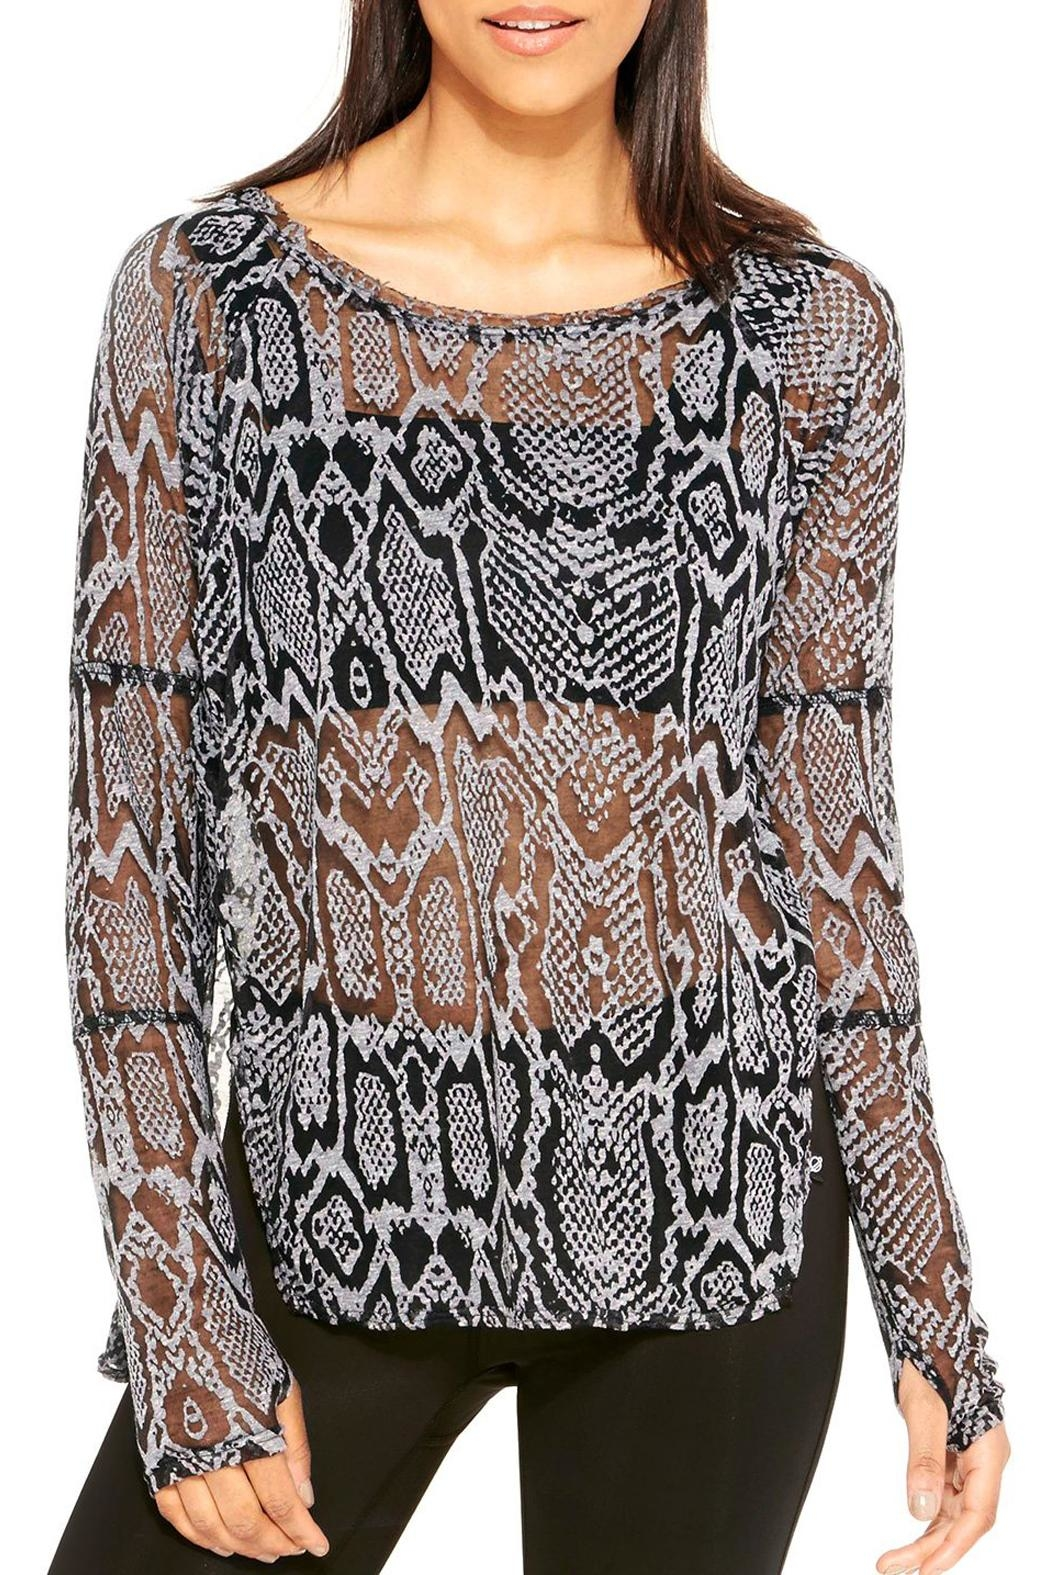 Terez Burnout Snakeskin Top - Main Image